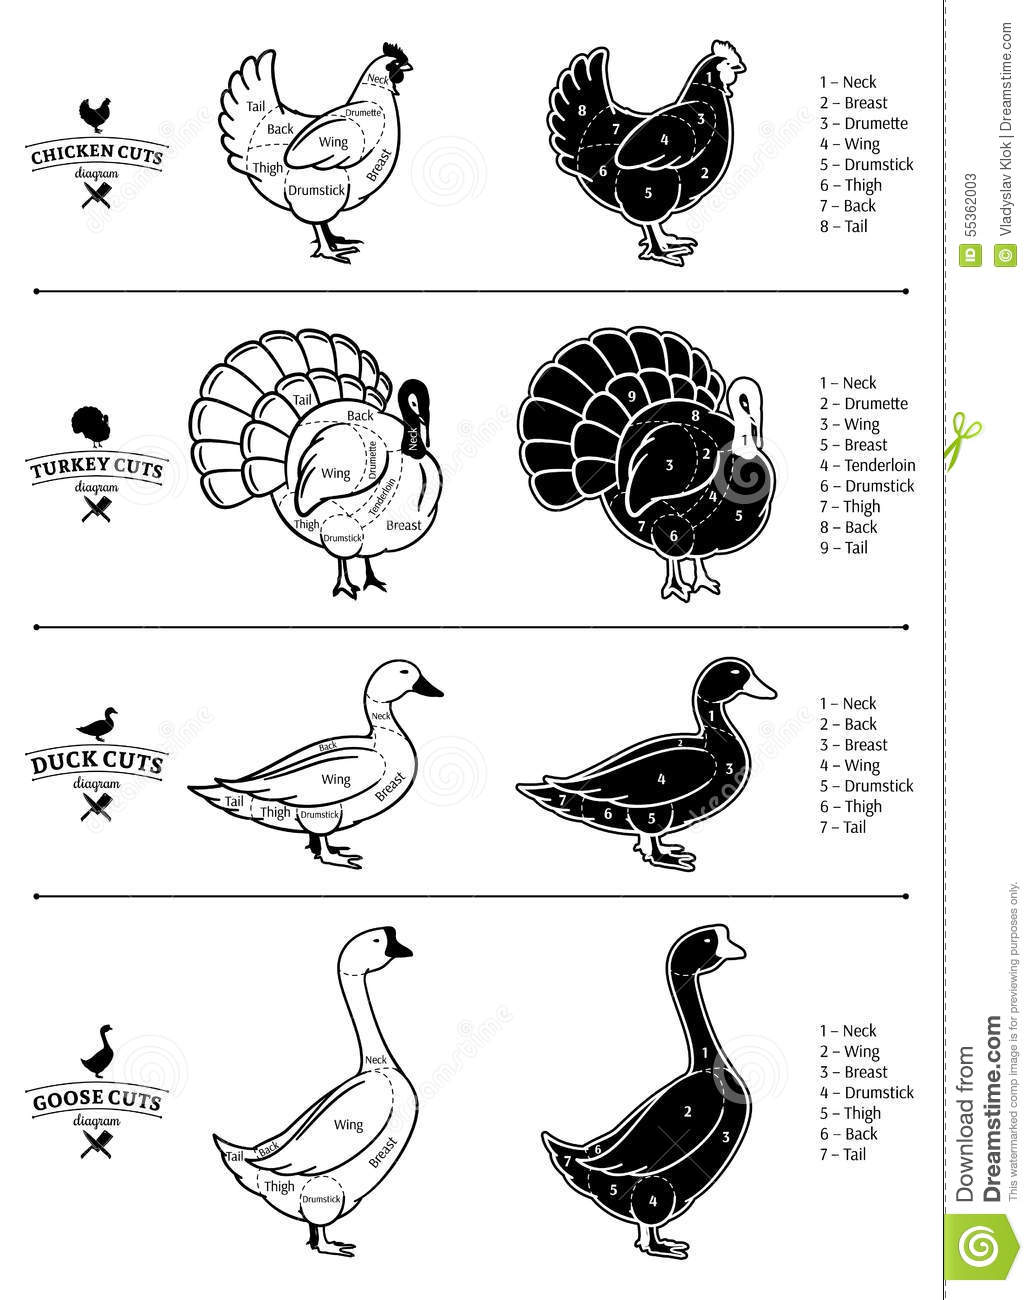 Poultry Cuts Diagrams Stock Vector Illustration Of Beef 55362003 Chicken Diagram Royalty Free